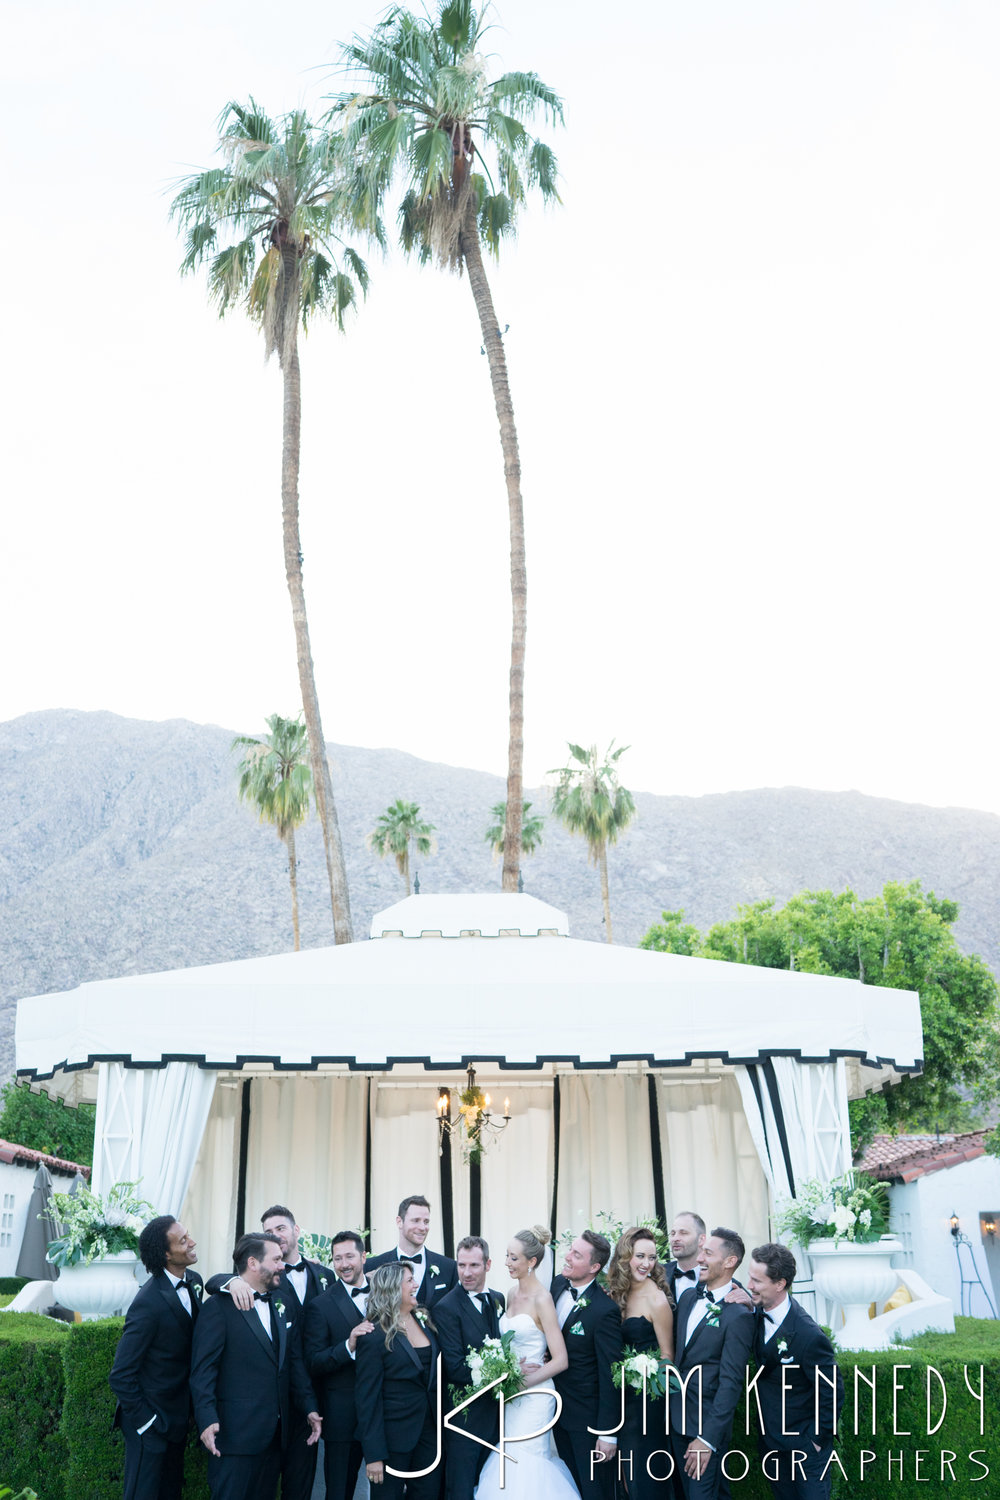 palm-springs-wedding-jim-kennedy-photographers_0231.JPG